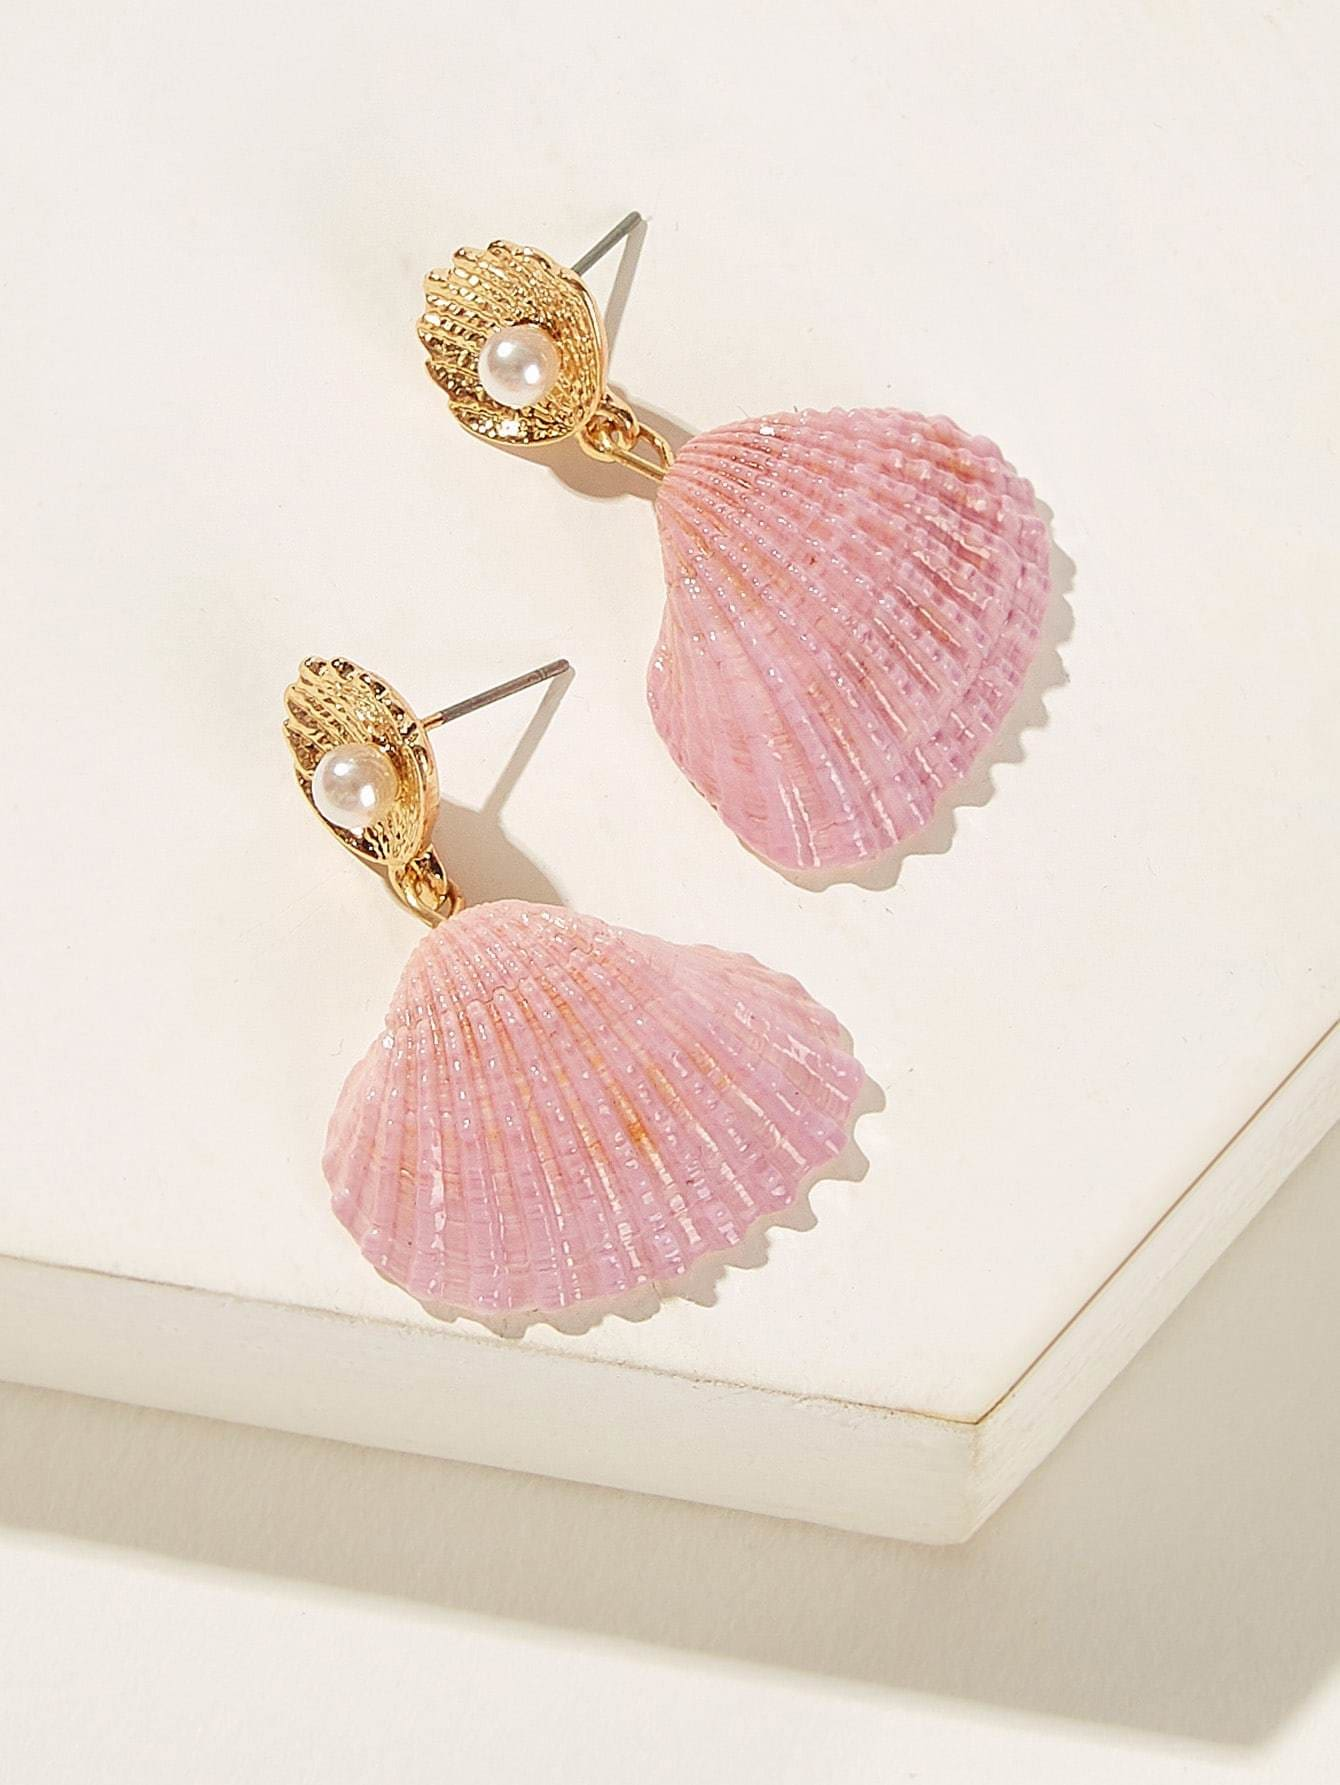 Faux Pearl Decor Shell Drop Earrings 1pair